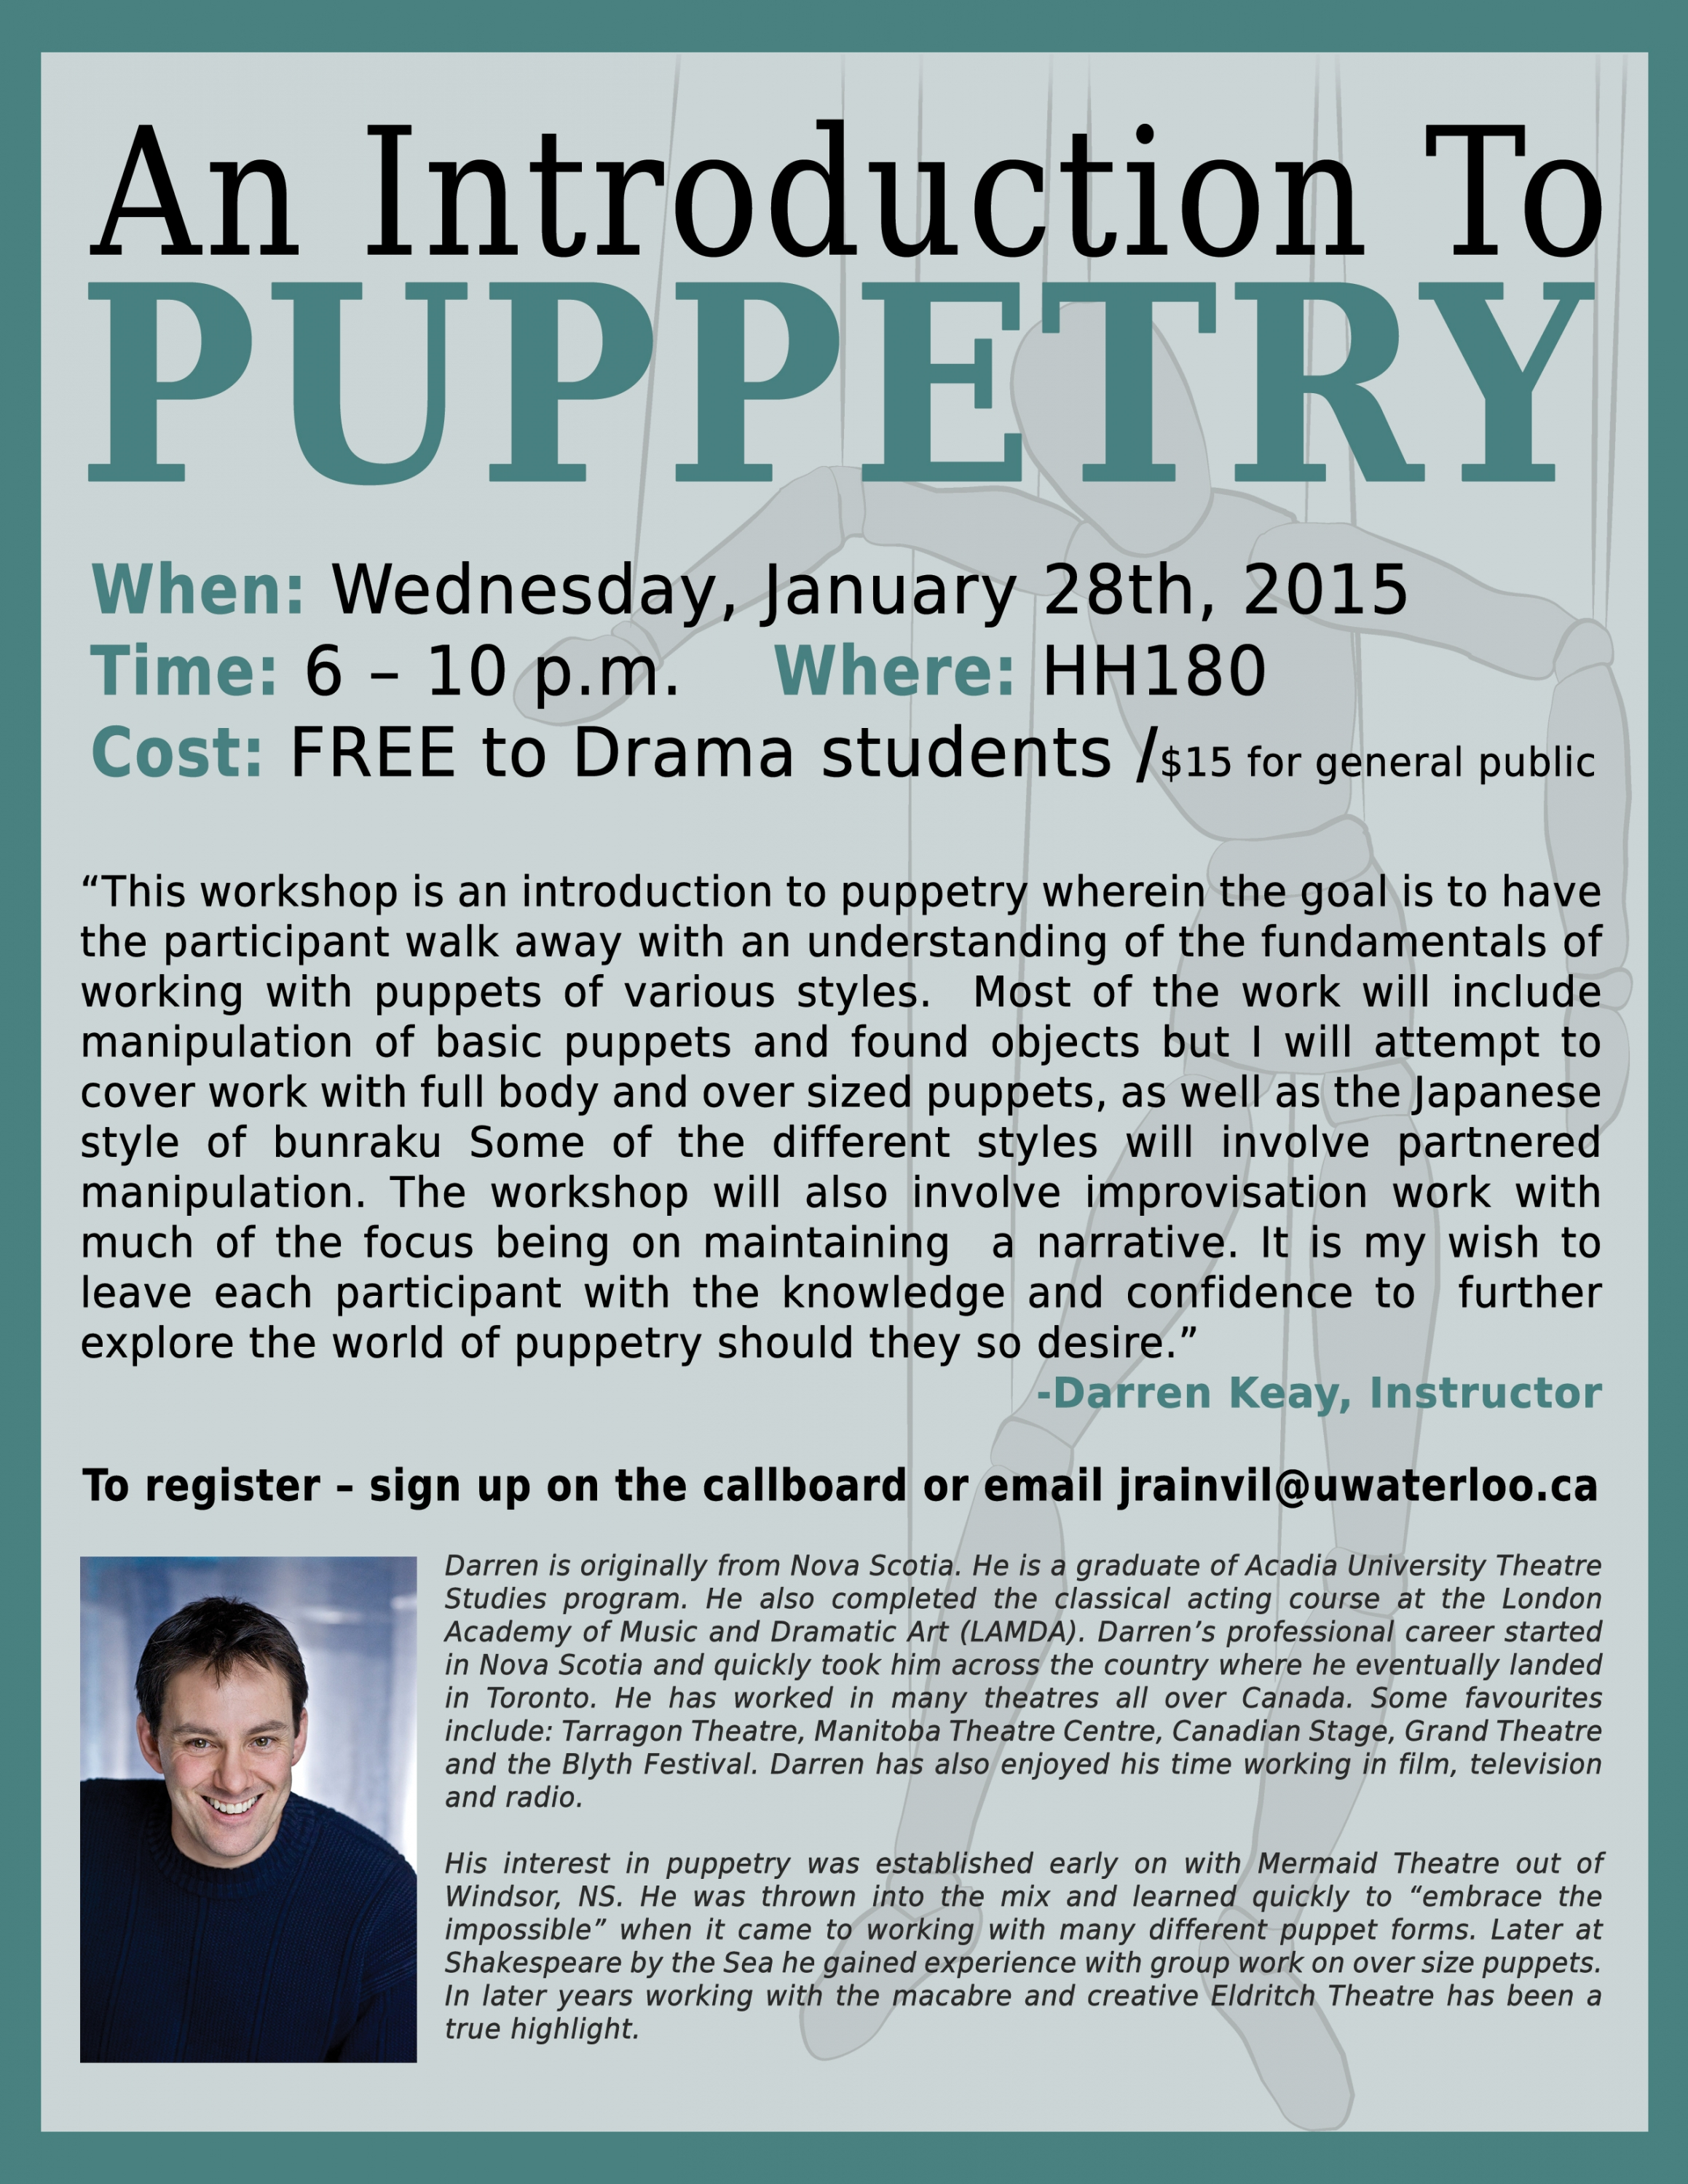 poster for puppetry workshop